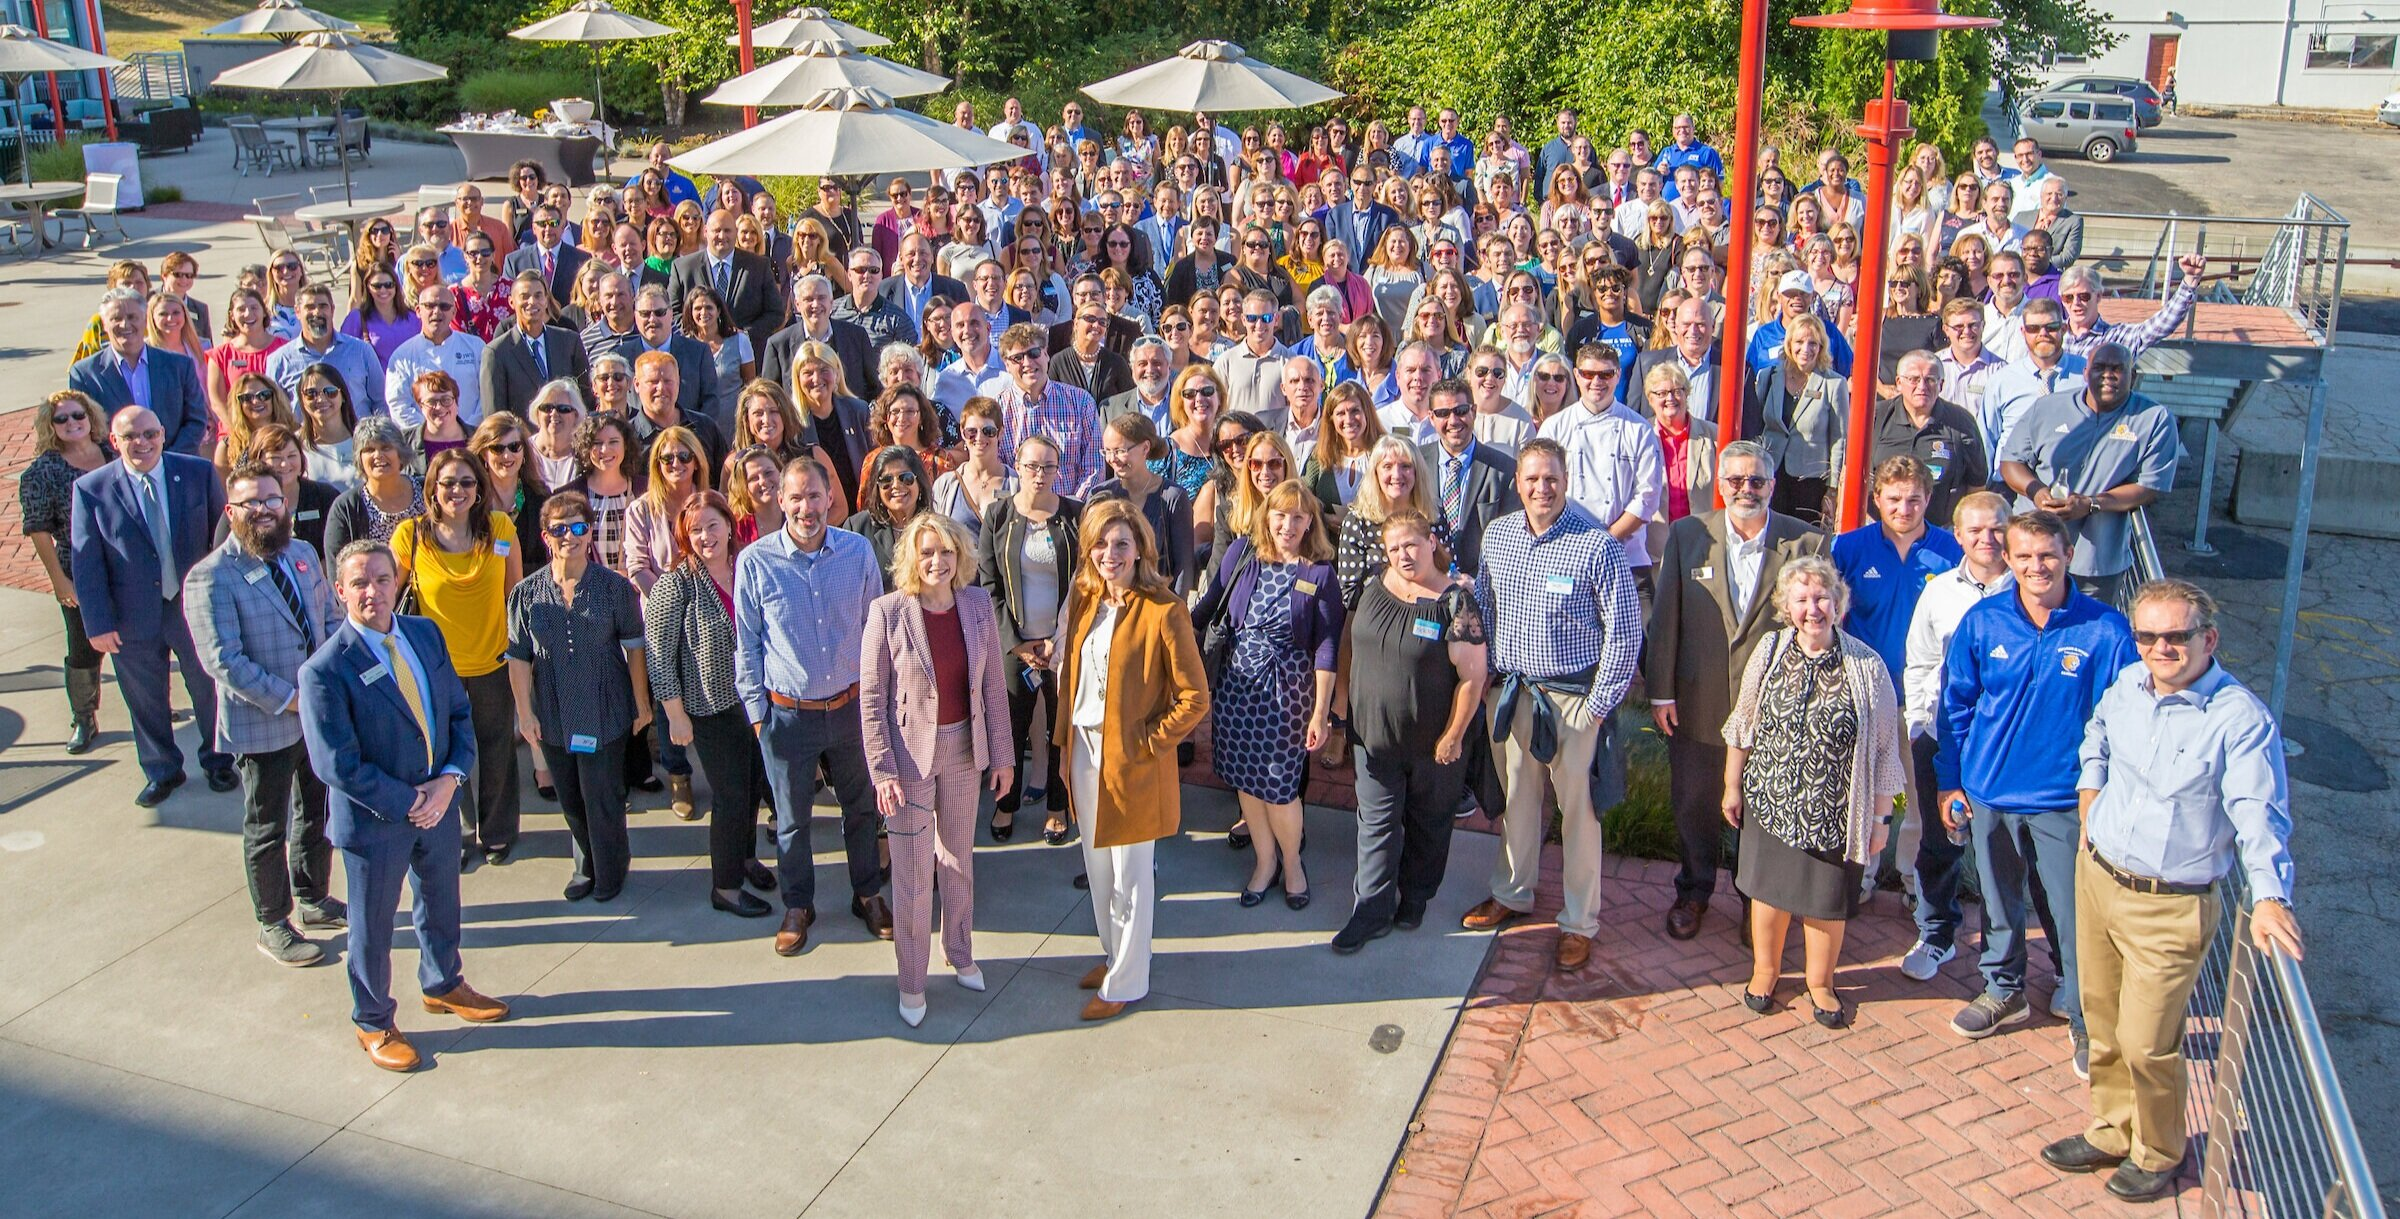 Reception in honor of Providence Campus President Marie Bernardo-Sousa, LP.D., '92 - September 20, 2019